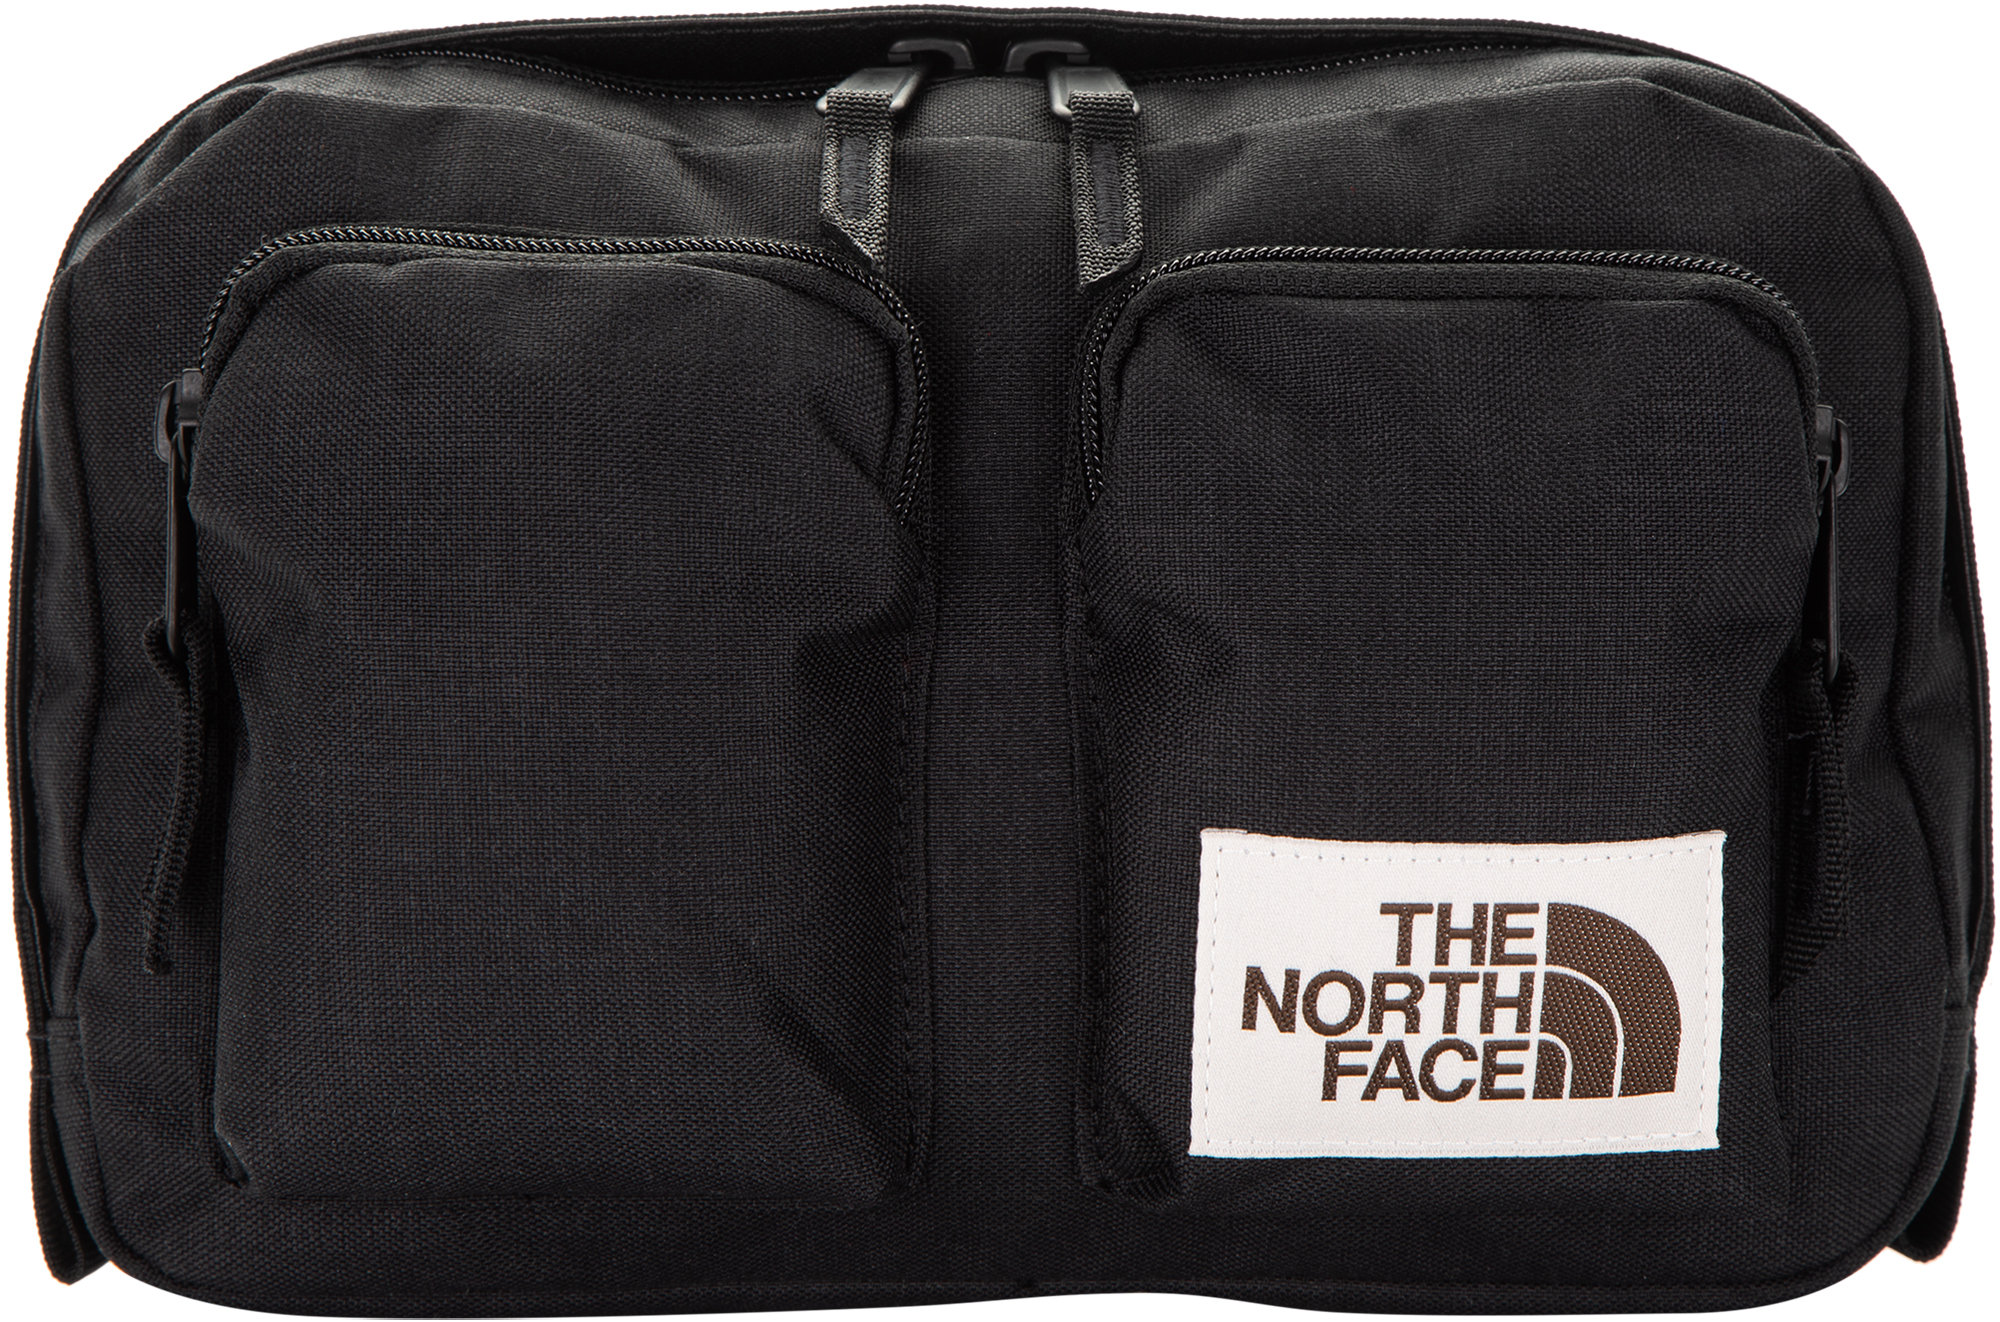 The North Face Сумка на пояс